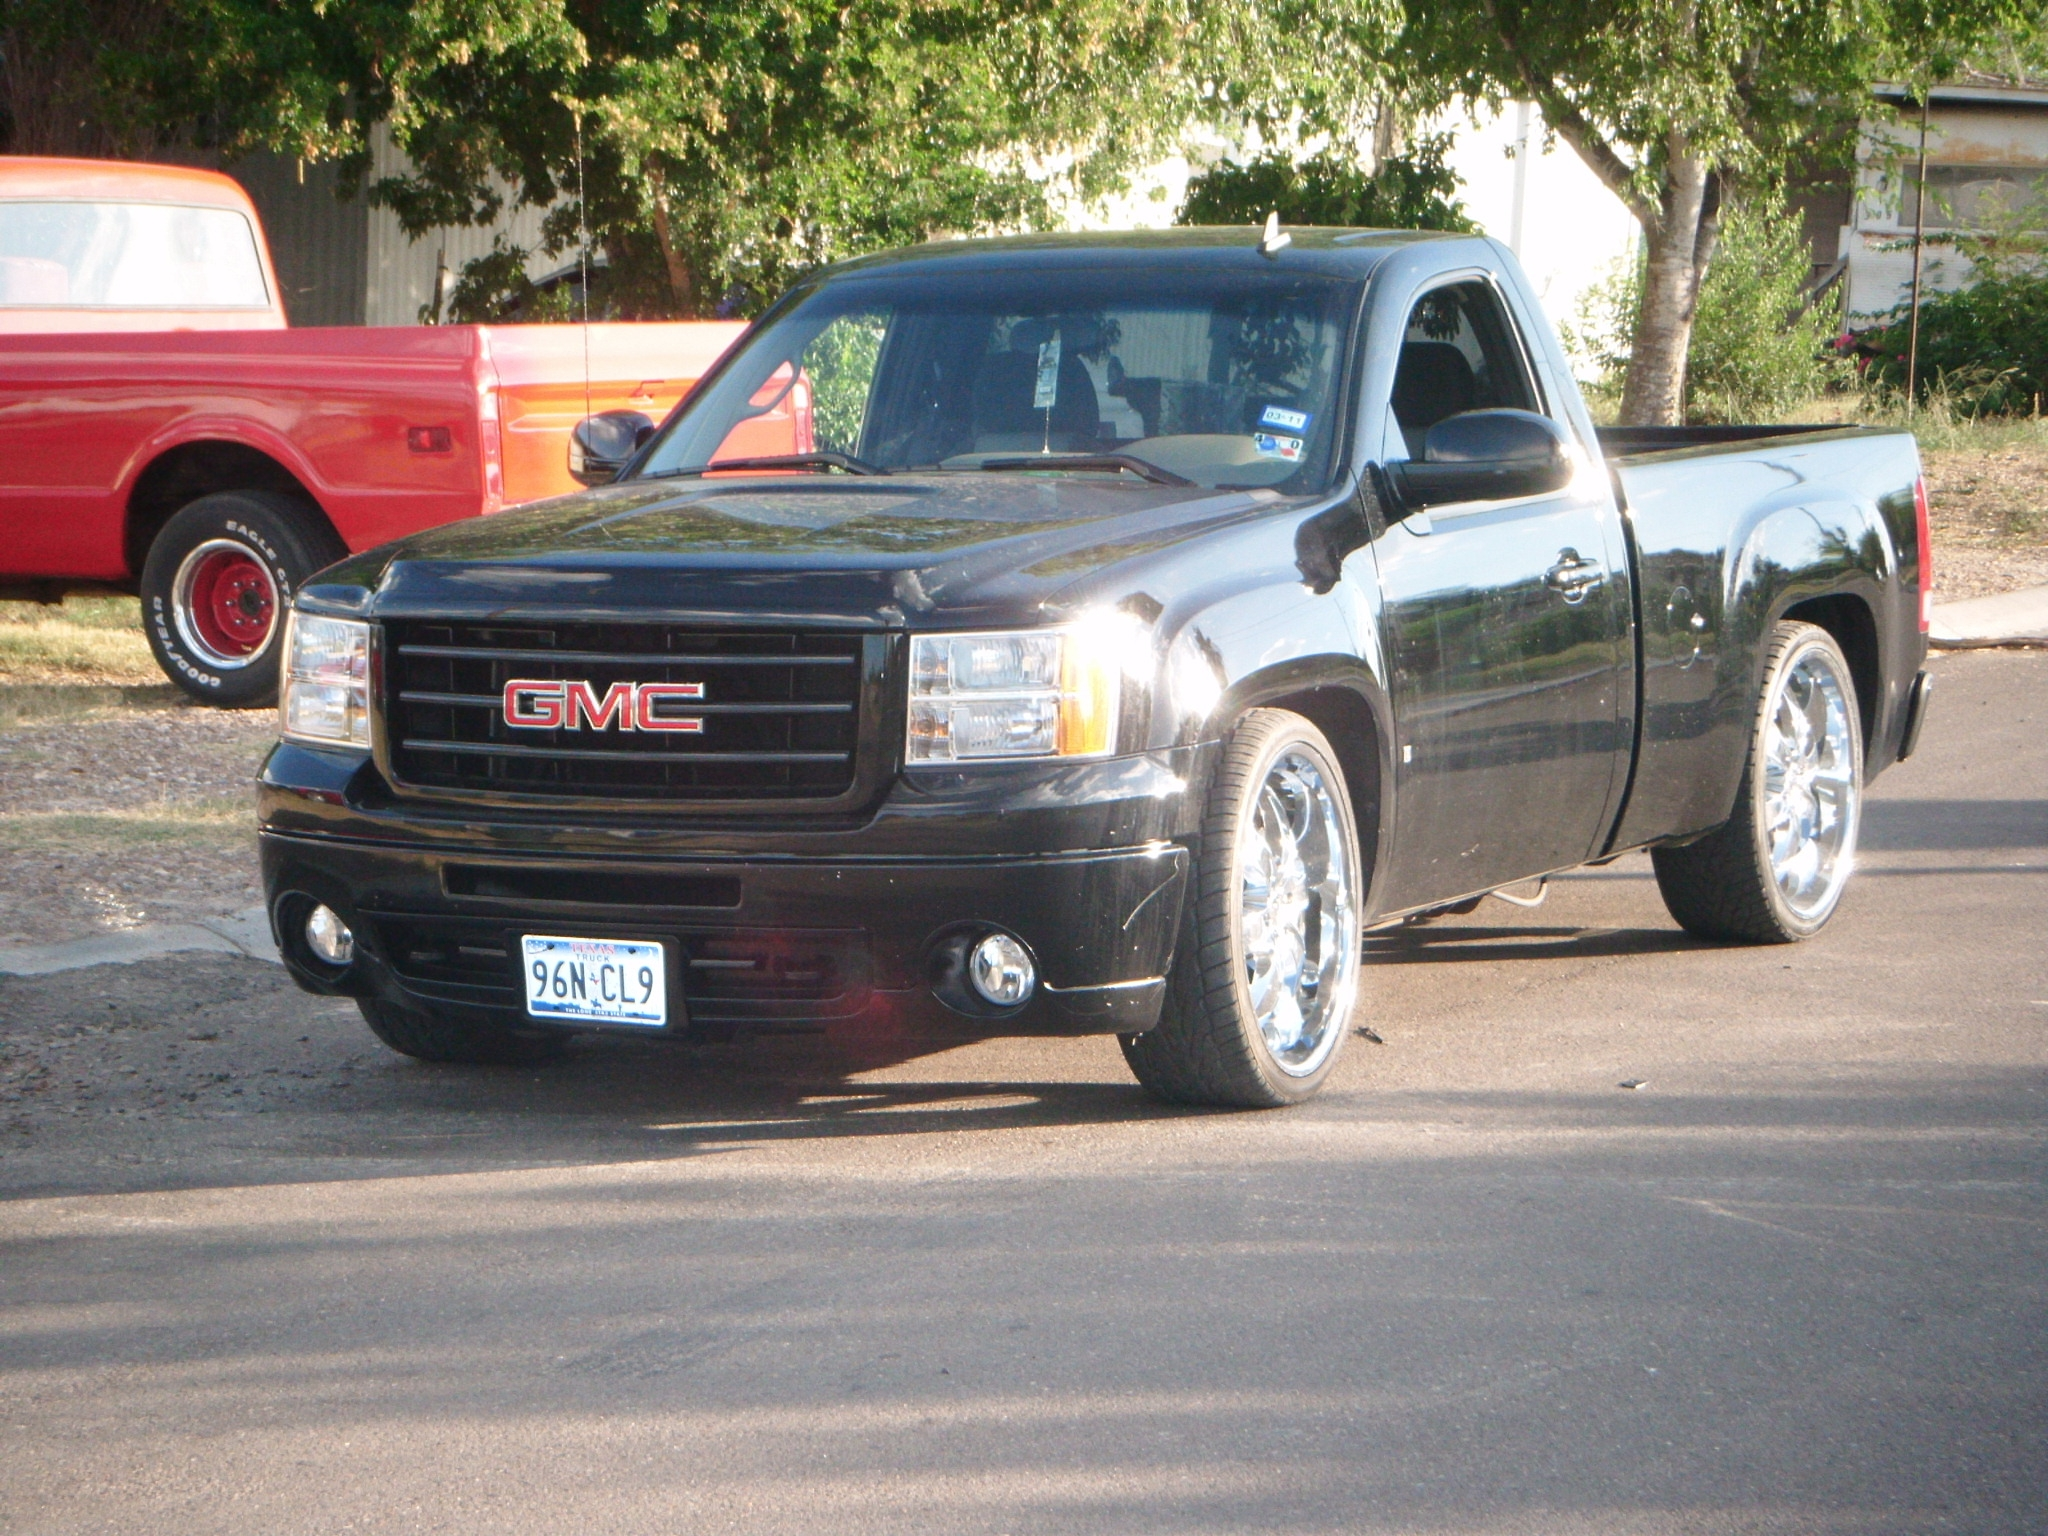 roggie9 2009 gmc sierra 1500 regular cab specs photos modification info at cardomain. Black Bedroom Furniture Sets. Home Design Ideas